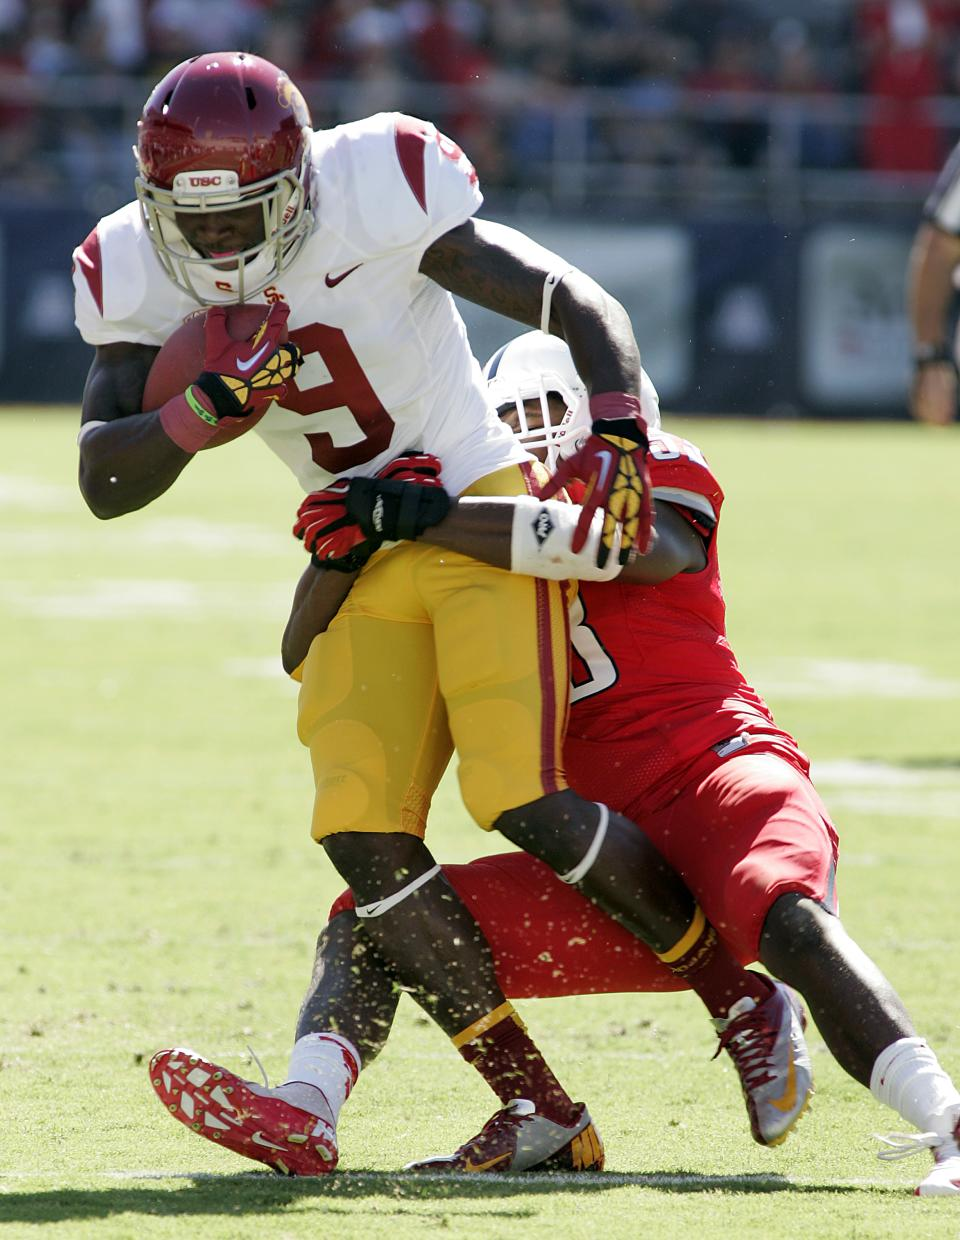 Southern California's Marqise Lee (9) is dragged down near the sidelines by Arizona's Sir Thomas Jackson, right, during the first half of an NCAA college football game at Arizona Stadium in Tucson, Ariz., Saturday, Oct. 27, 2012. (AP Photo/John Miller)